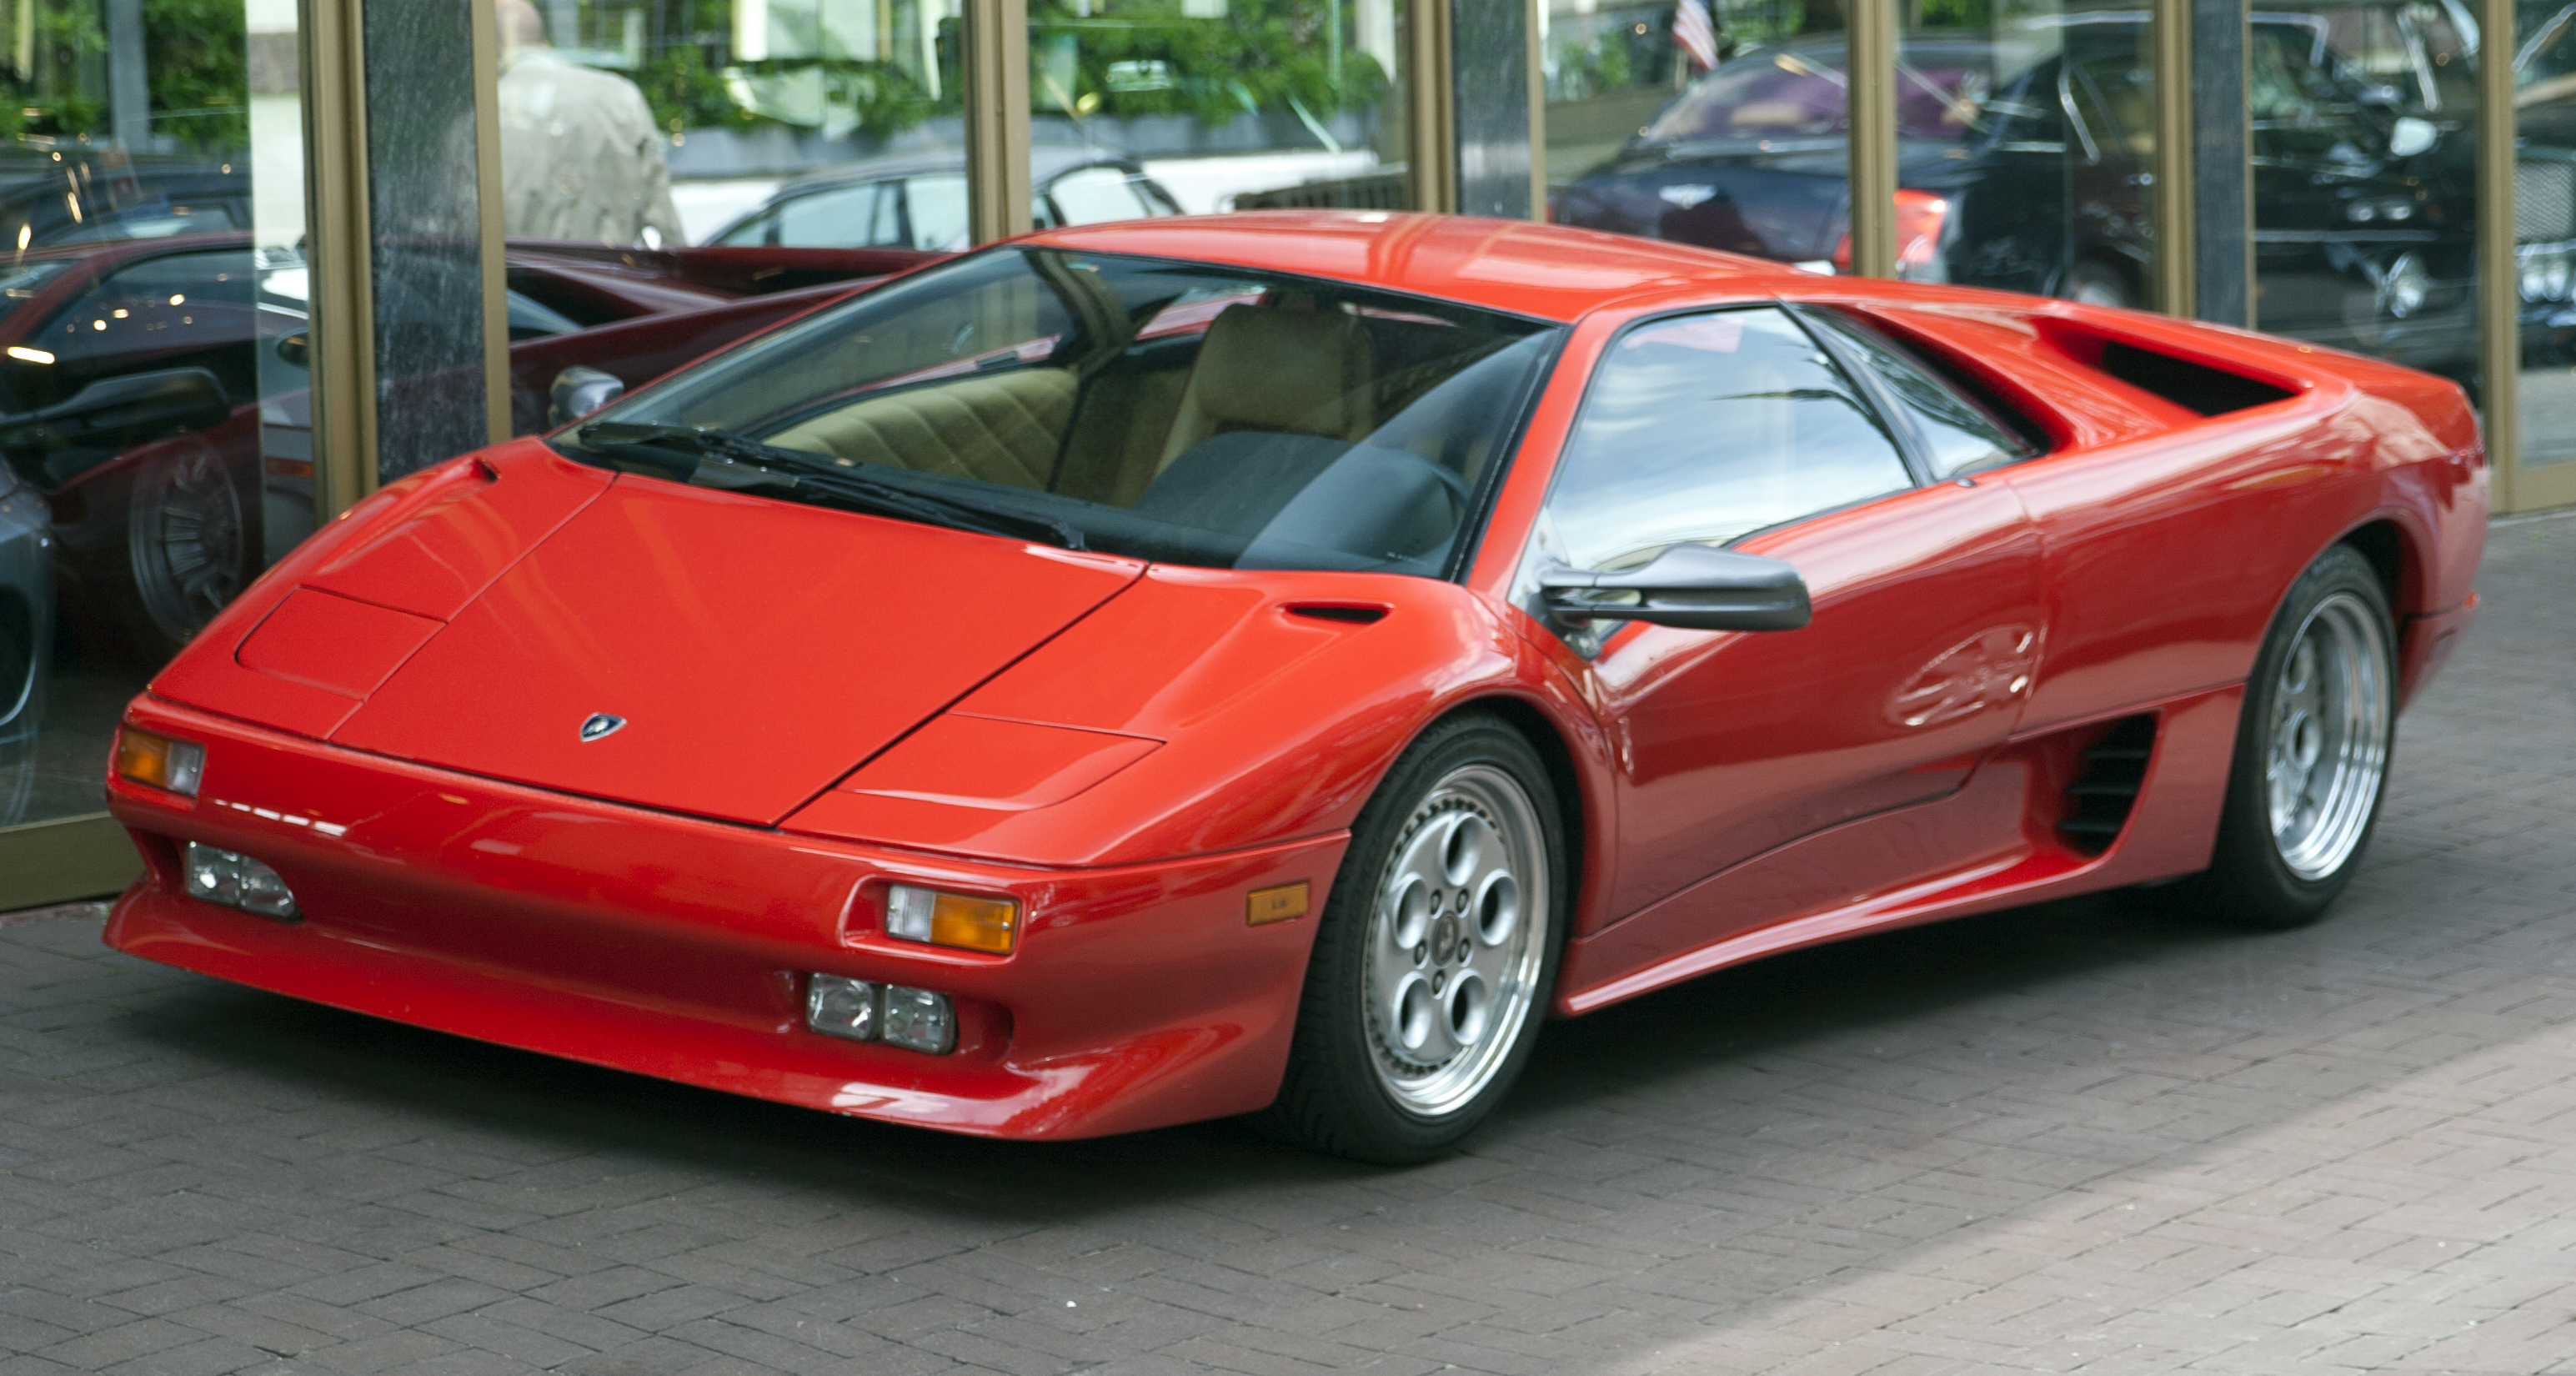 File:Early Lamborghini Diablo In Red